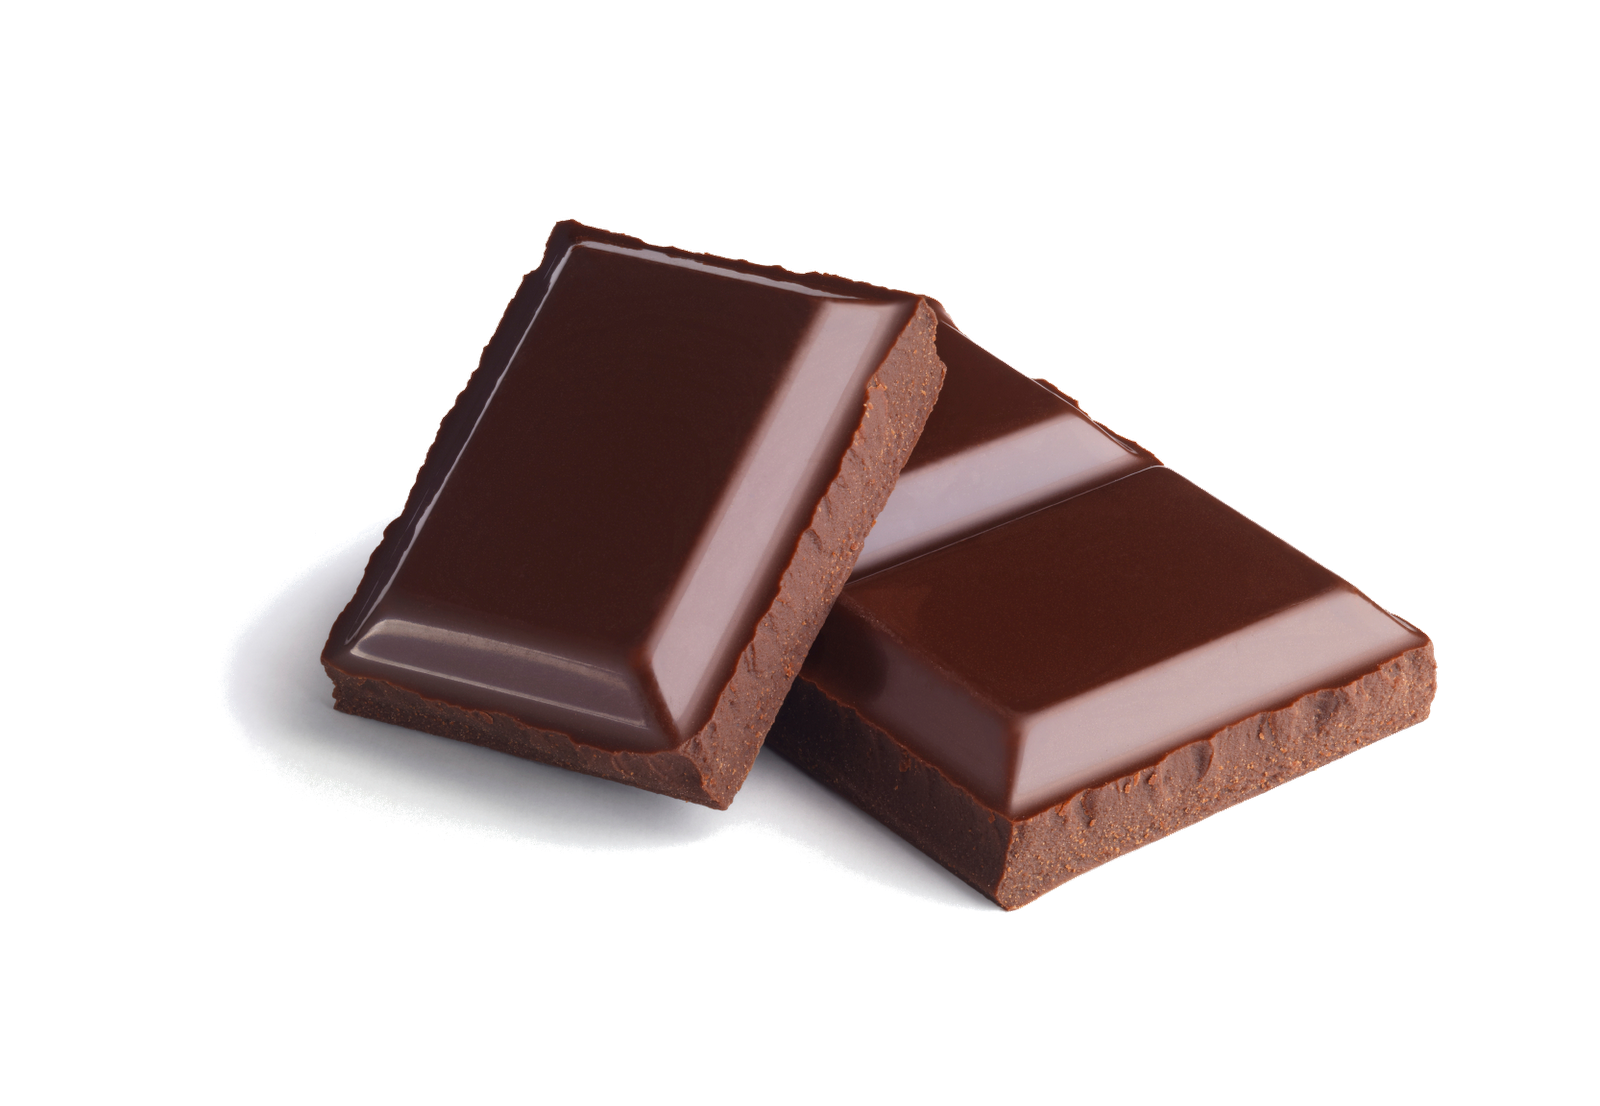 Chocolate PNG - 20239